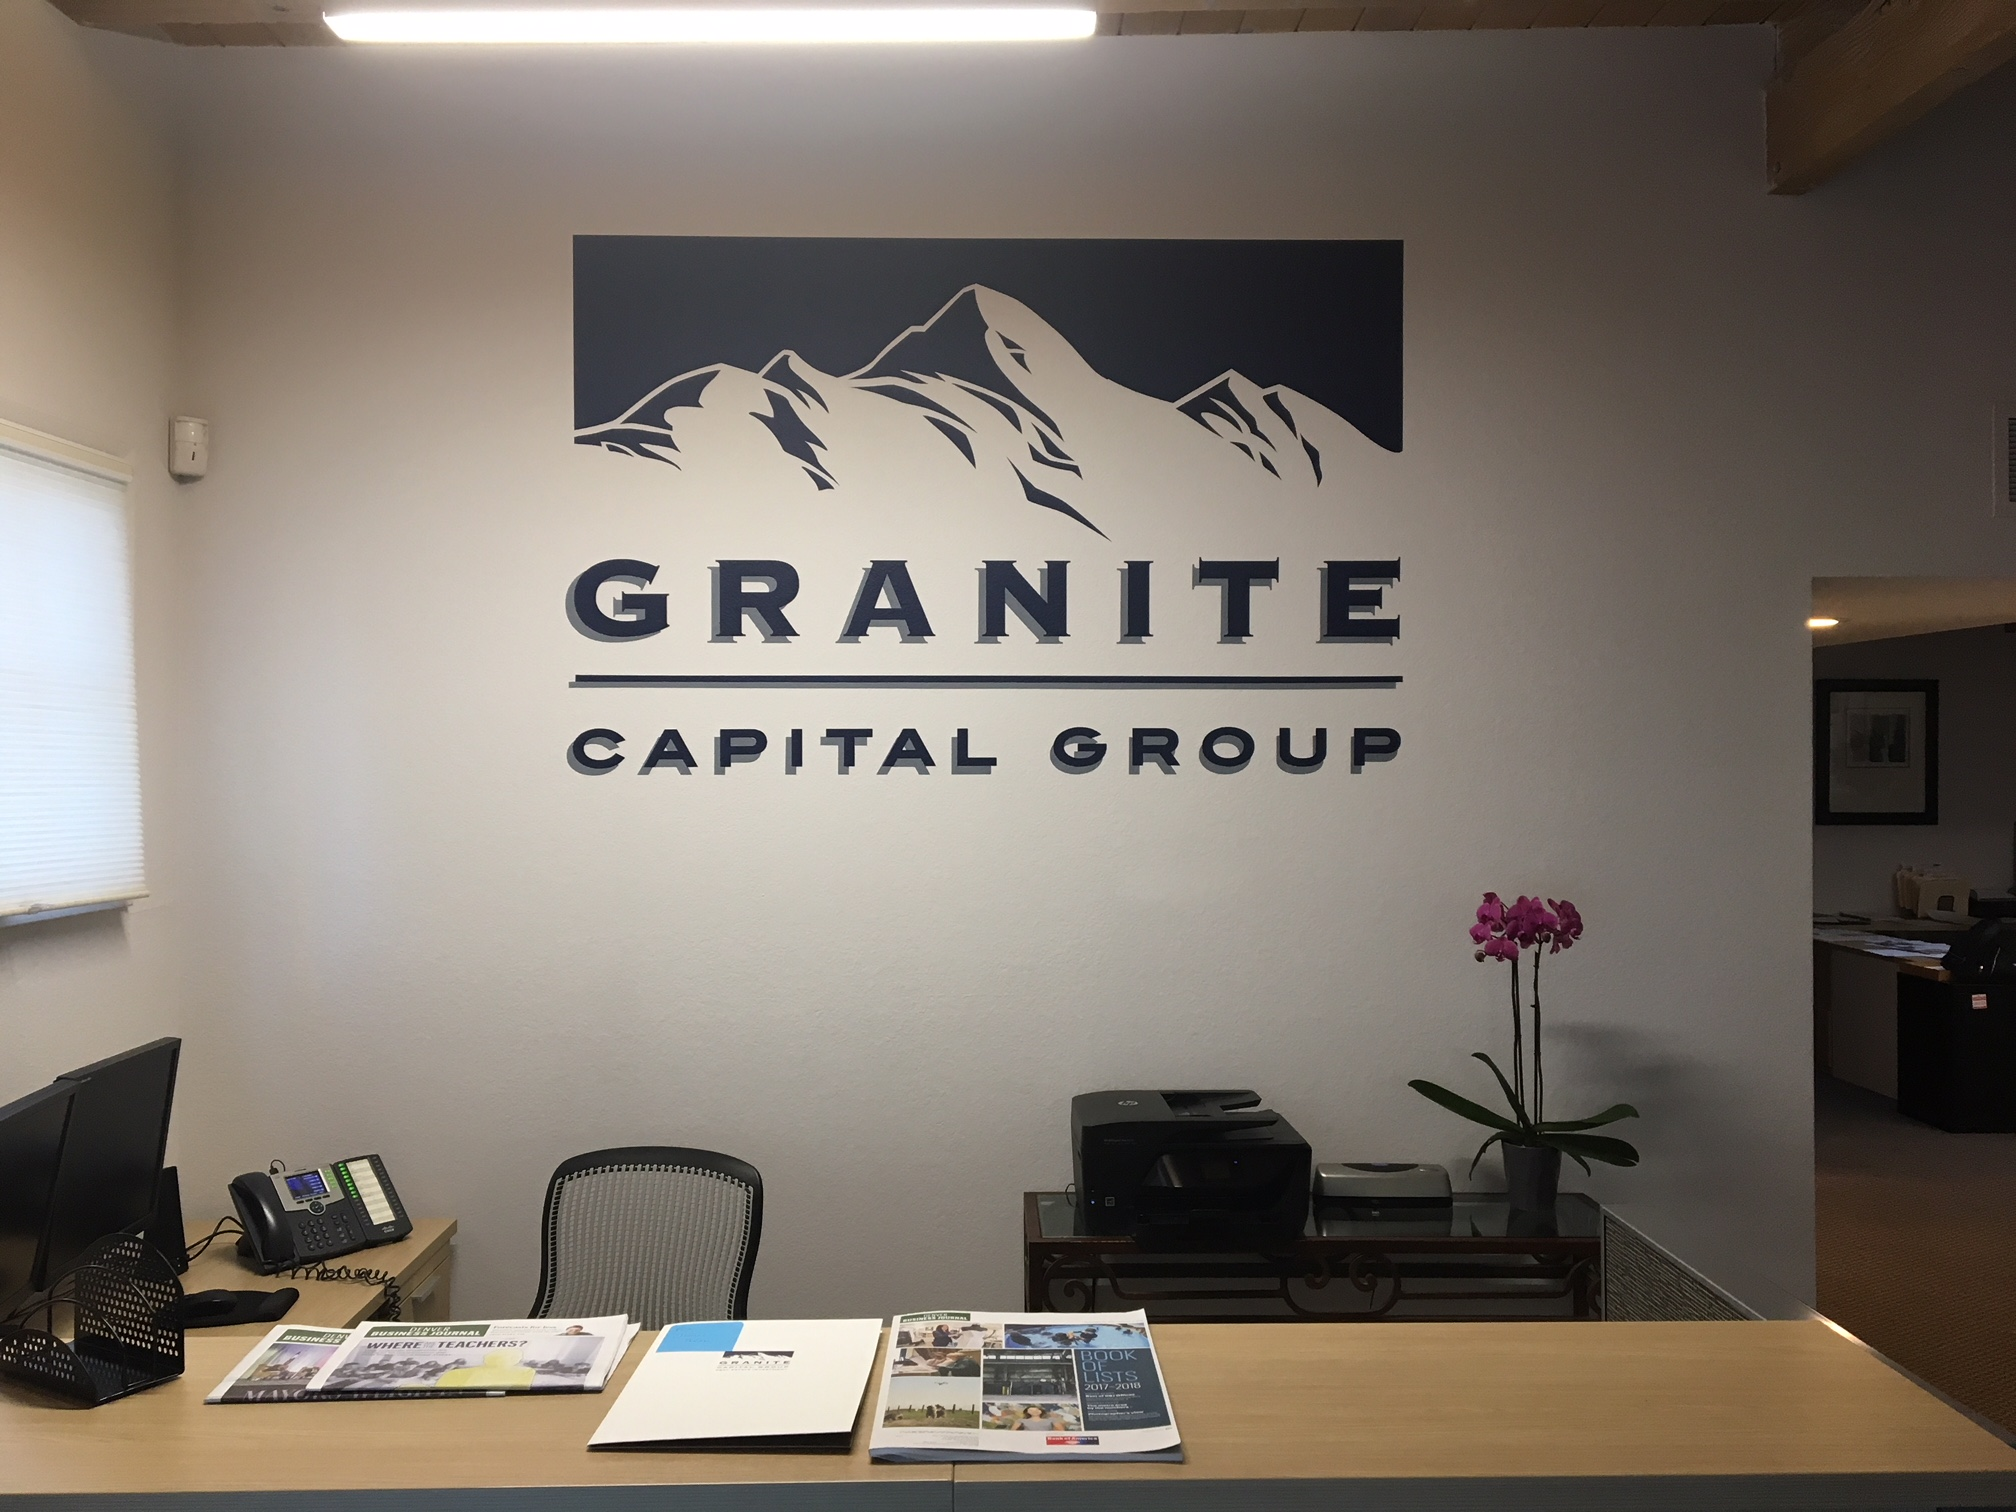 Granite Capital Group